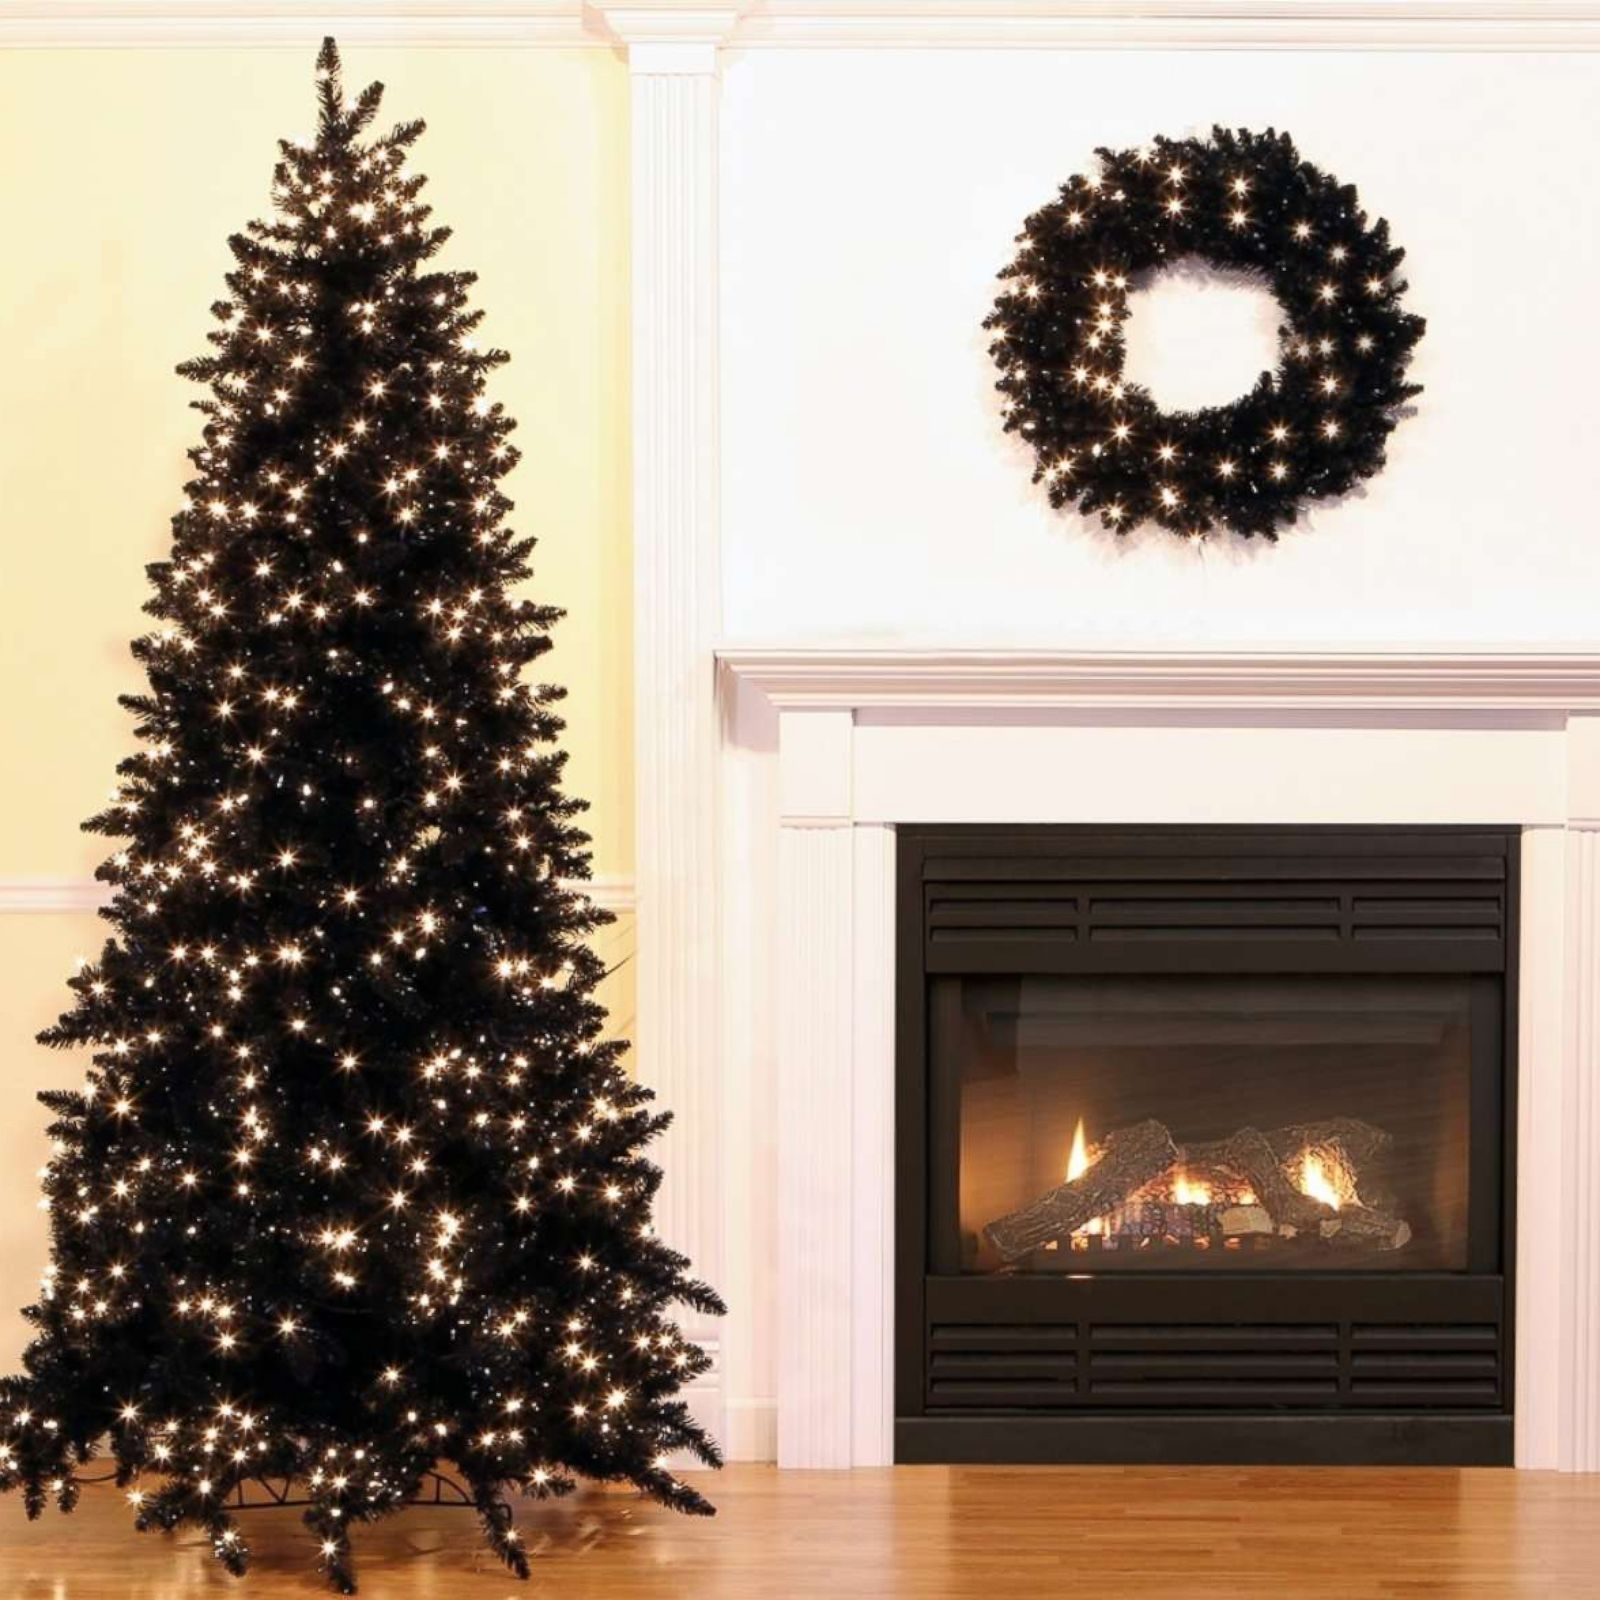 Image Christmas Tree.Black Christmas Trees Are A Hot Holiday Decorating Trend